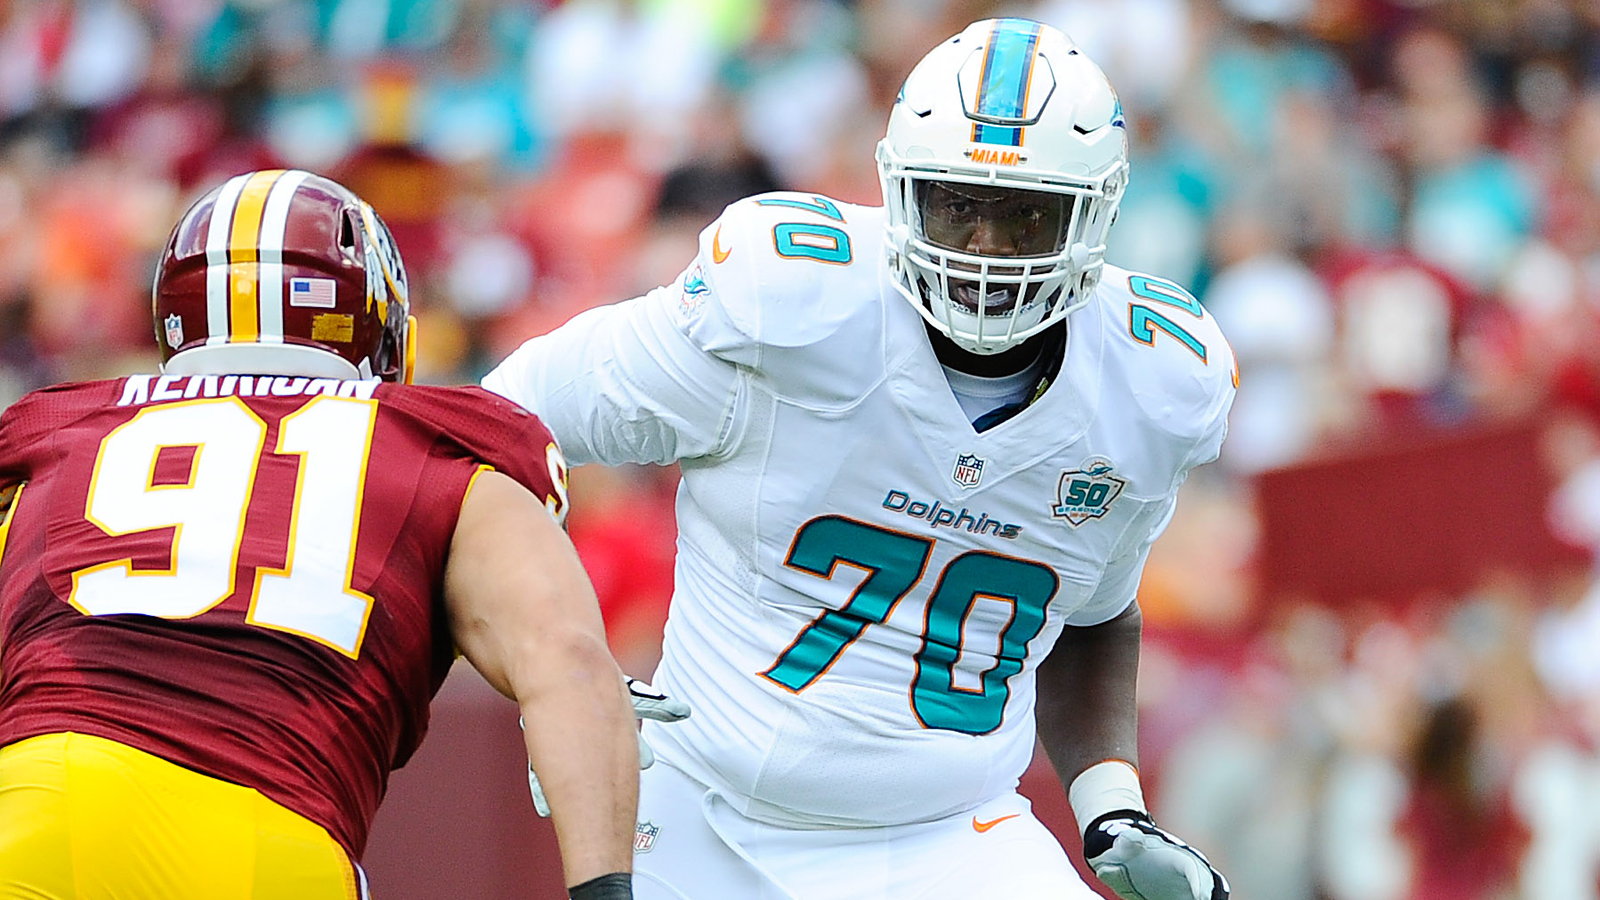 Ja'Wuan James, Earl Mitchell out for Dolphins against Chargers